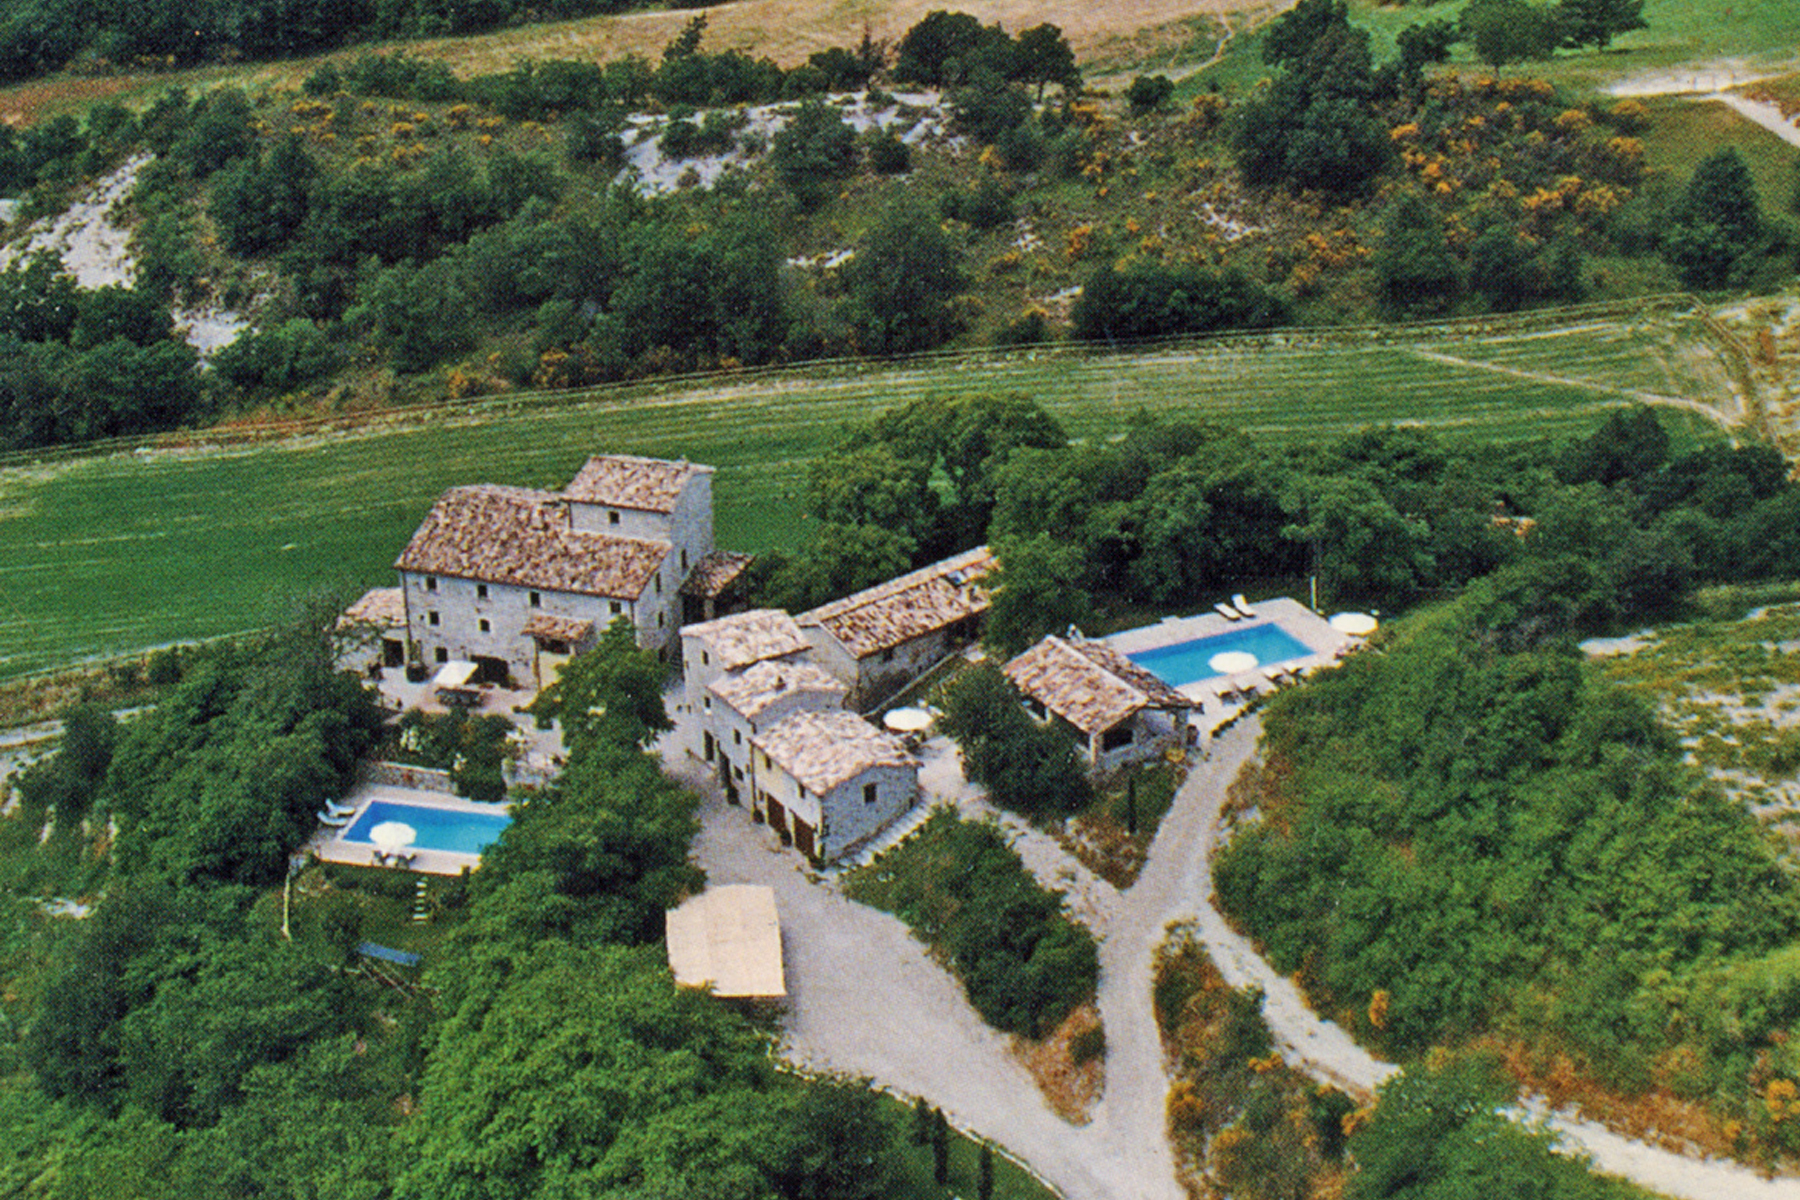 for Sale at Medieval hamlet with swimming pools and riding stables Montone Perugia, Perugia 06014 Italy